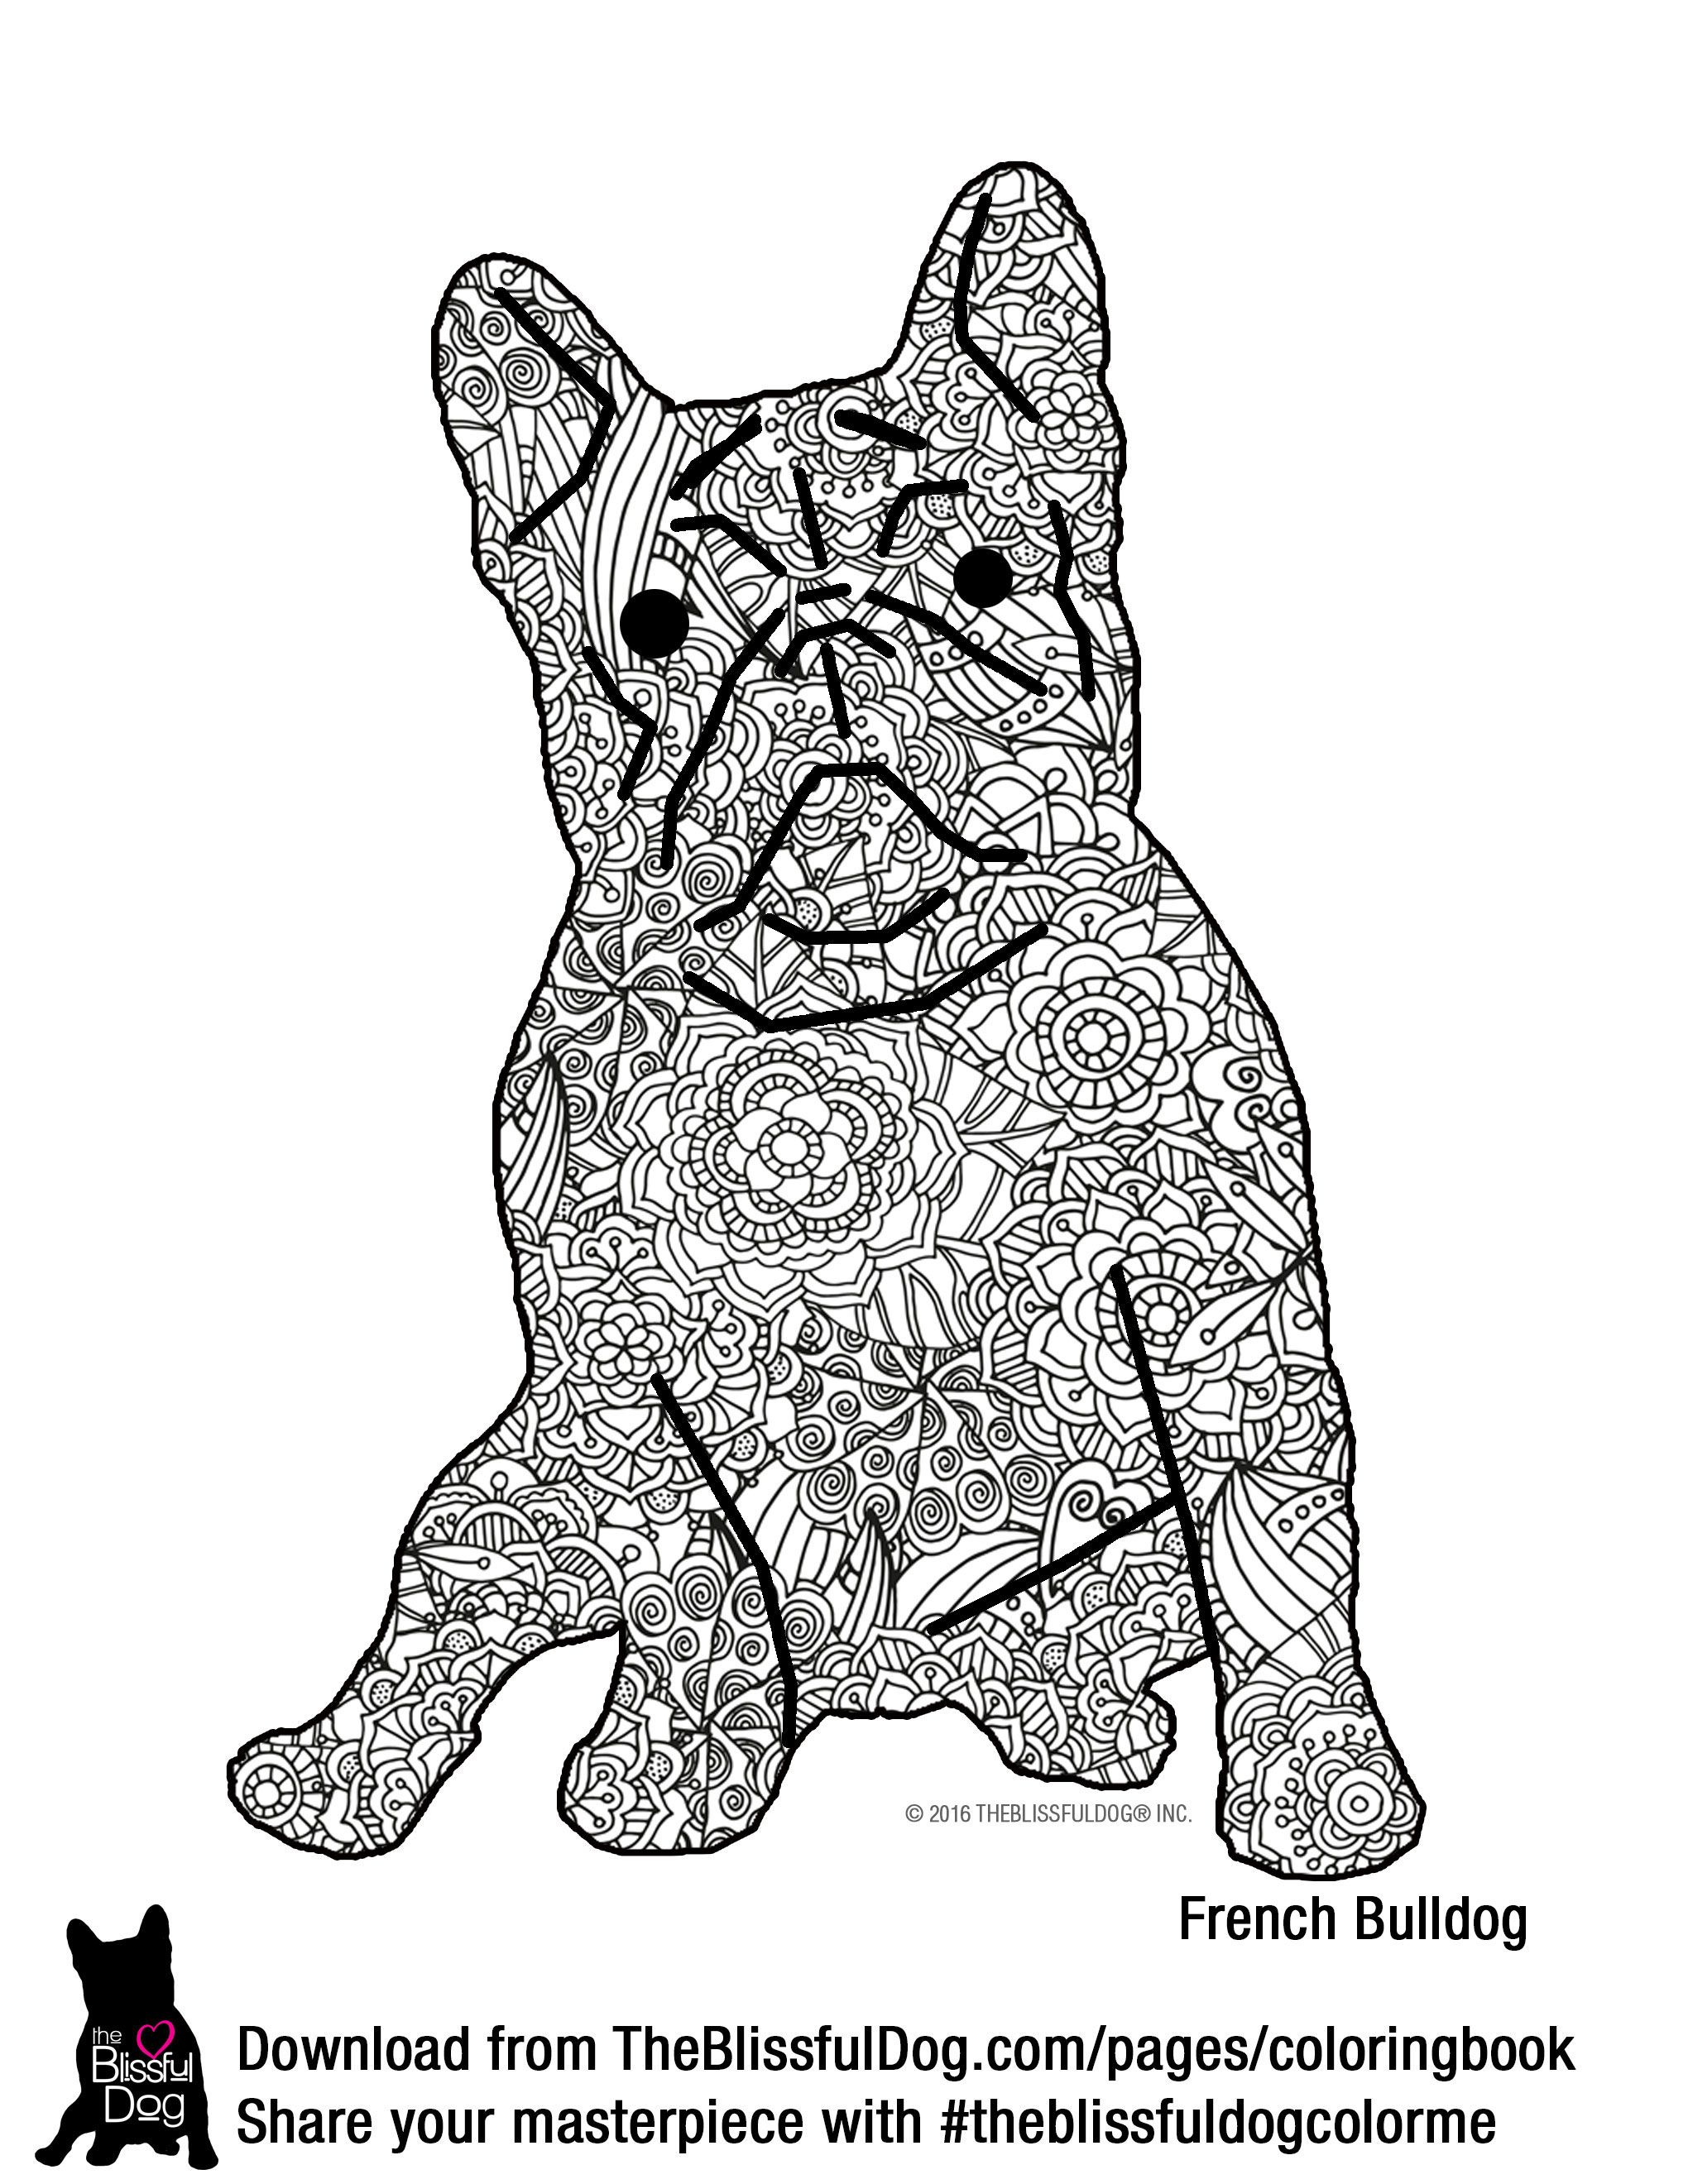 The Blissful Dog French Bulldog Coloring Page. BIG file so it will ...